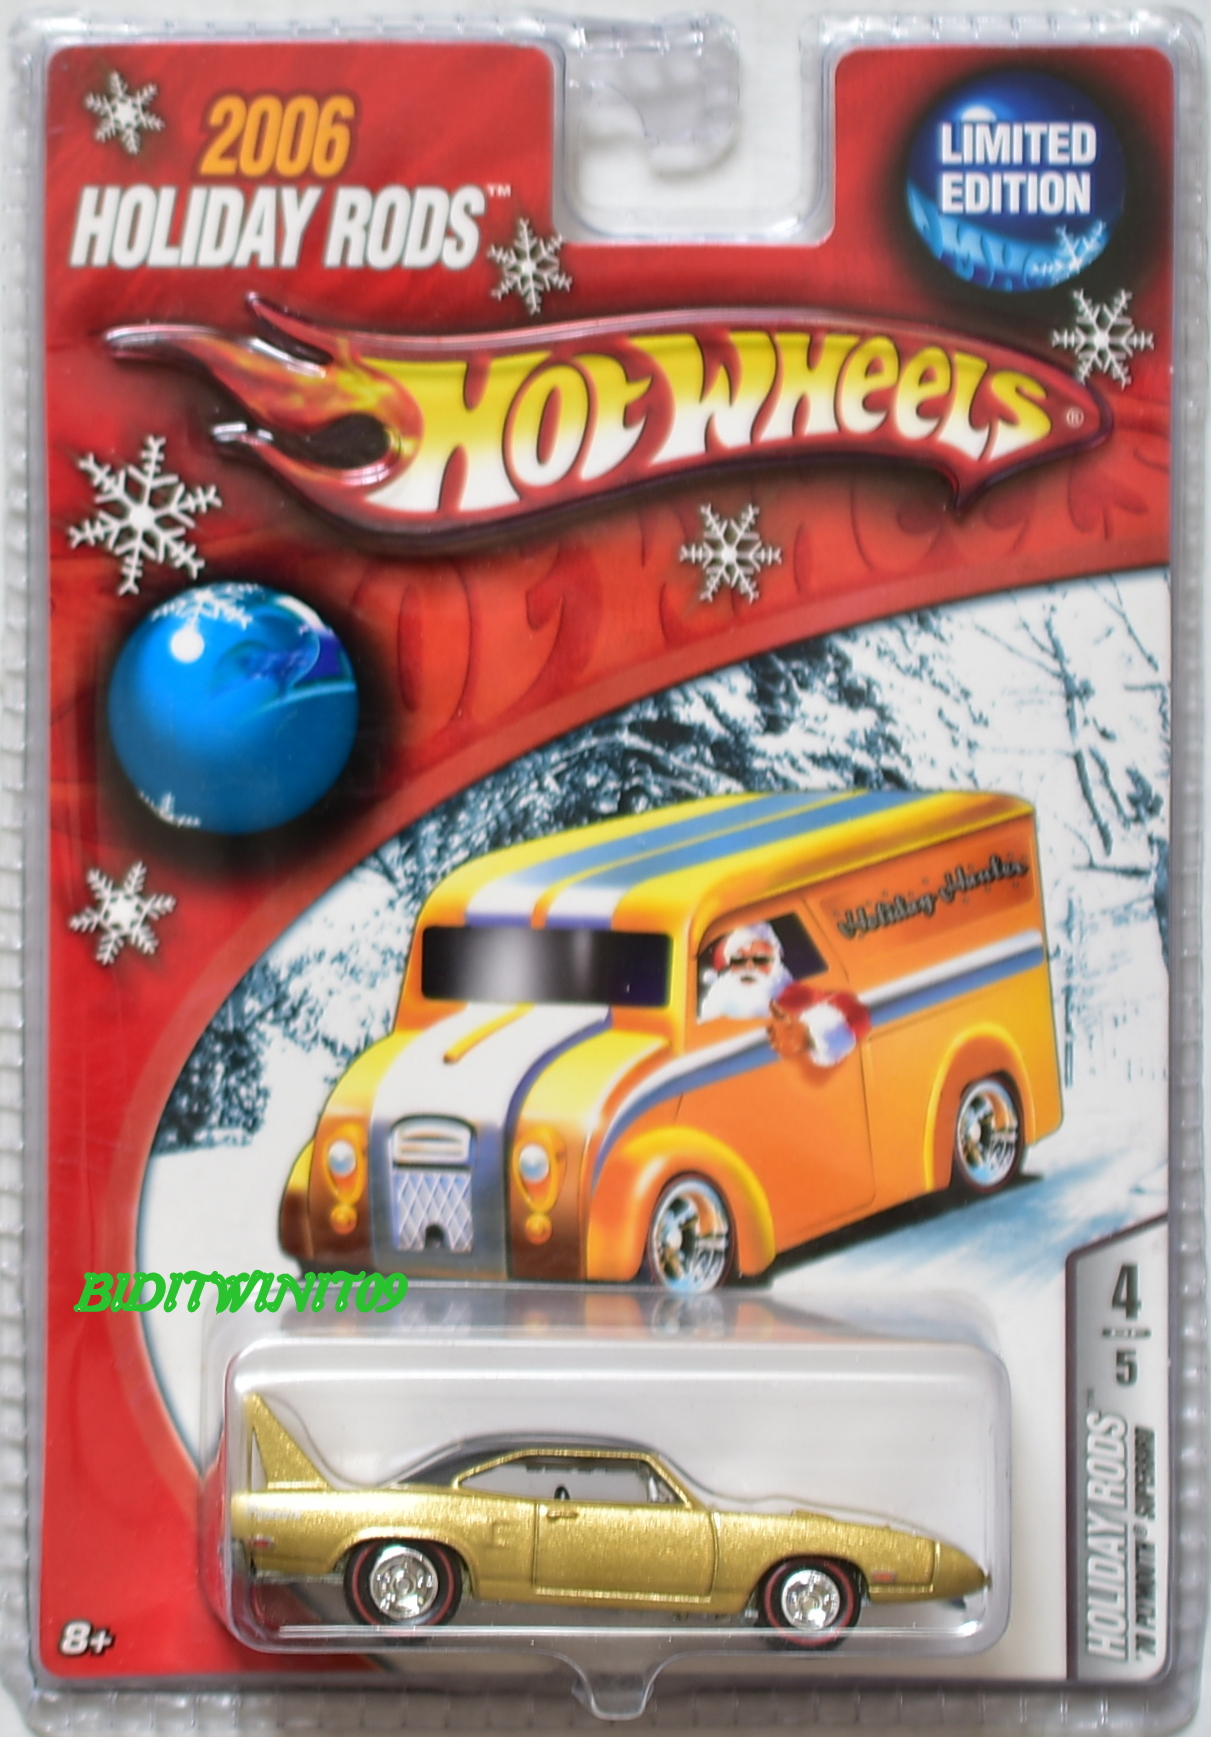 HOT WHEELS 2006 HOLIDAY RODS LIMITED EDITION '70 PLYMOUTH SUPERBIRD E+